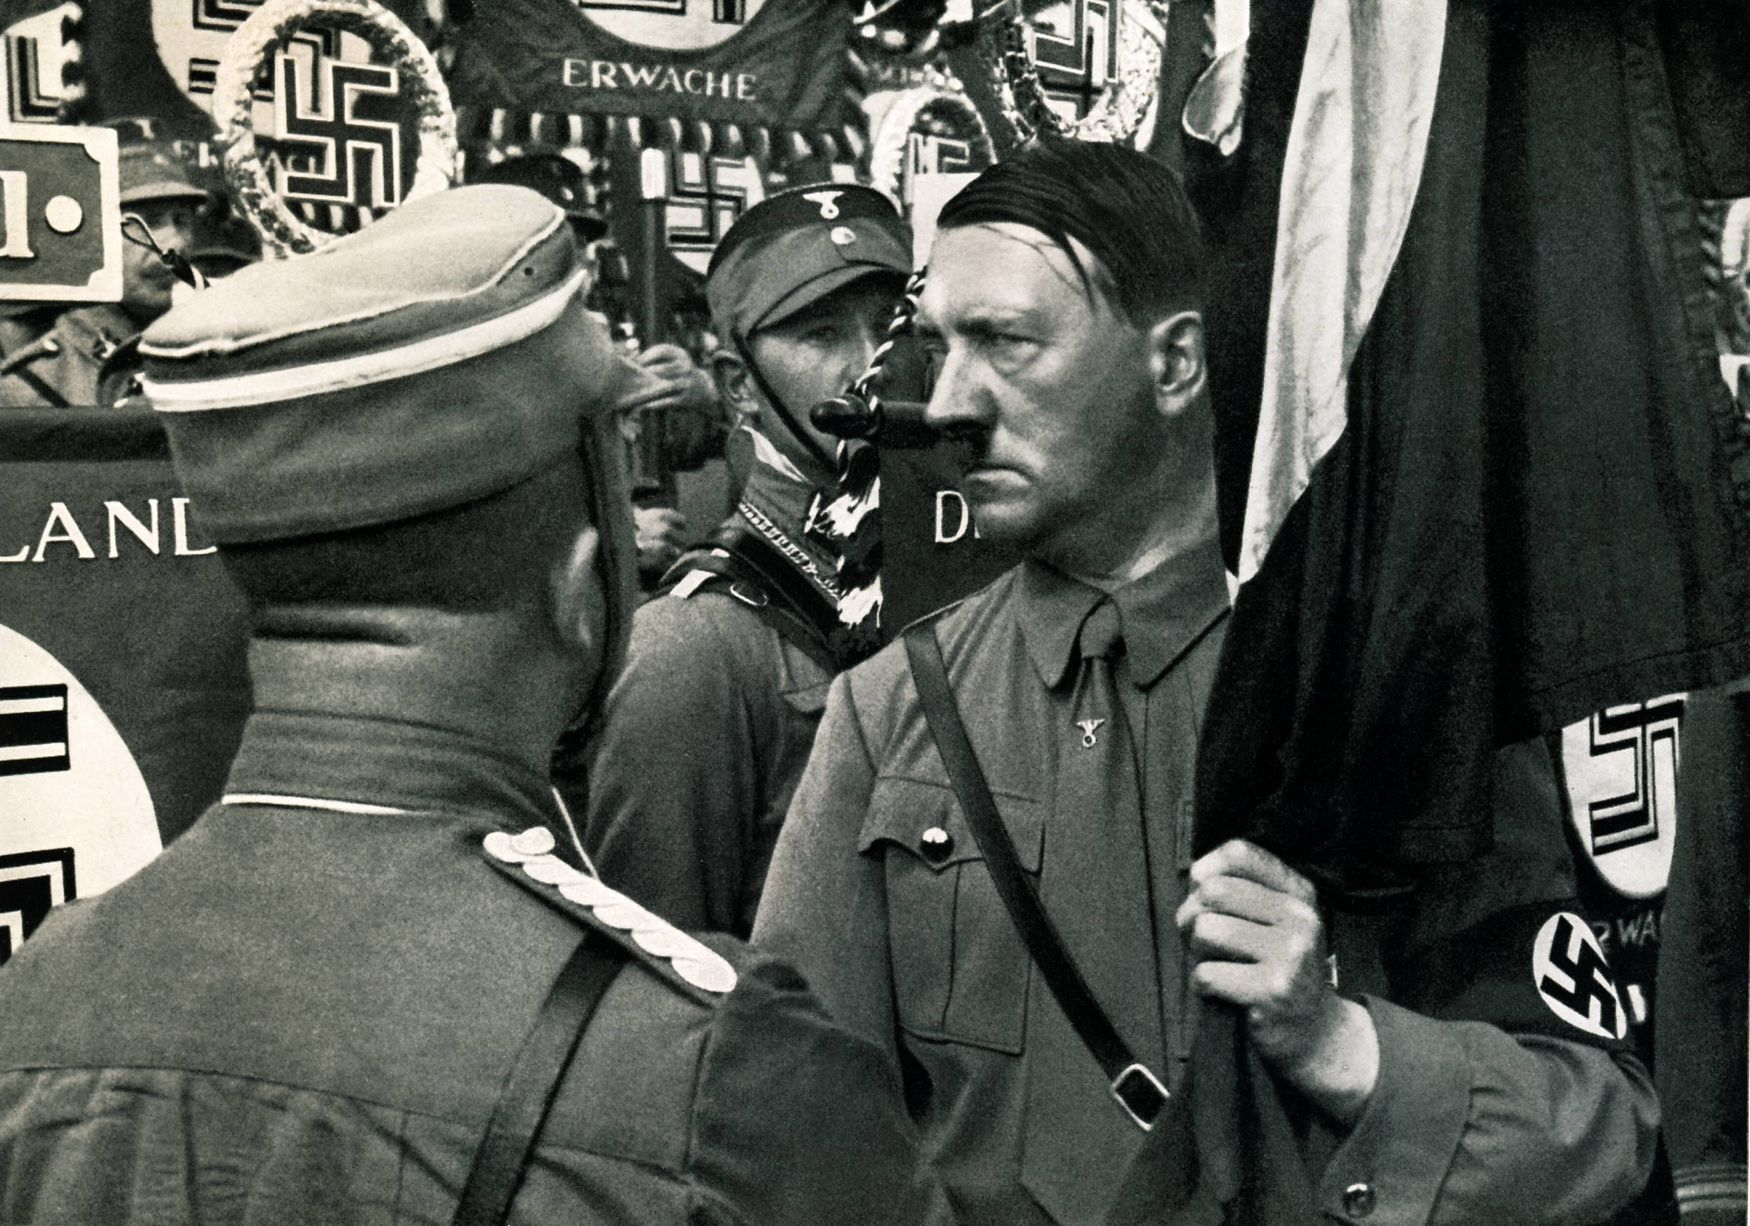 an analysis of hitlers following in his nazism quest At his inaugural ceremony, the audience gave the hitler salute and sang the horst wessel song, the anthem of the nazi party, before heidegger spoke about the glory and yet heidegger never publicly apologized for his early endorsement and service of hitler, nor fully reckoned with what his nazism.